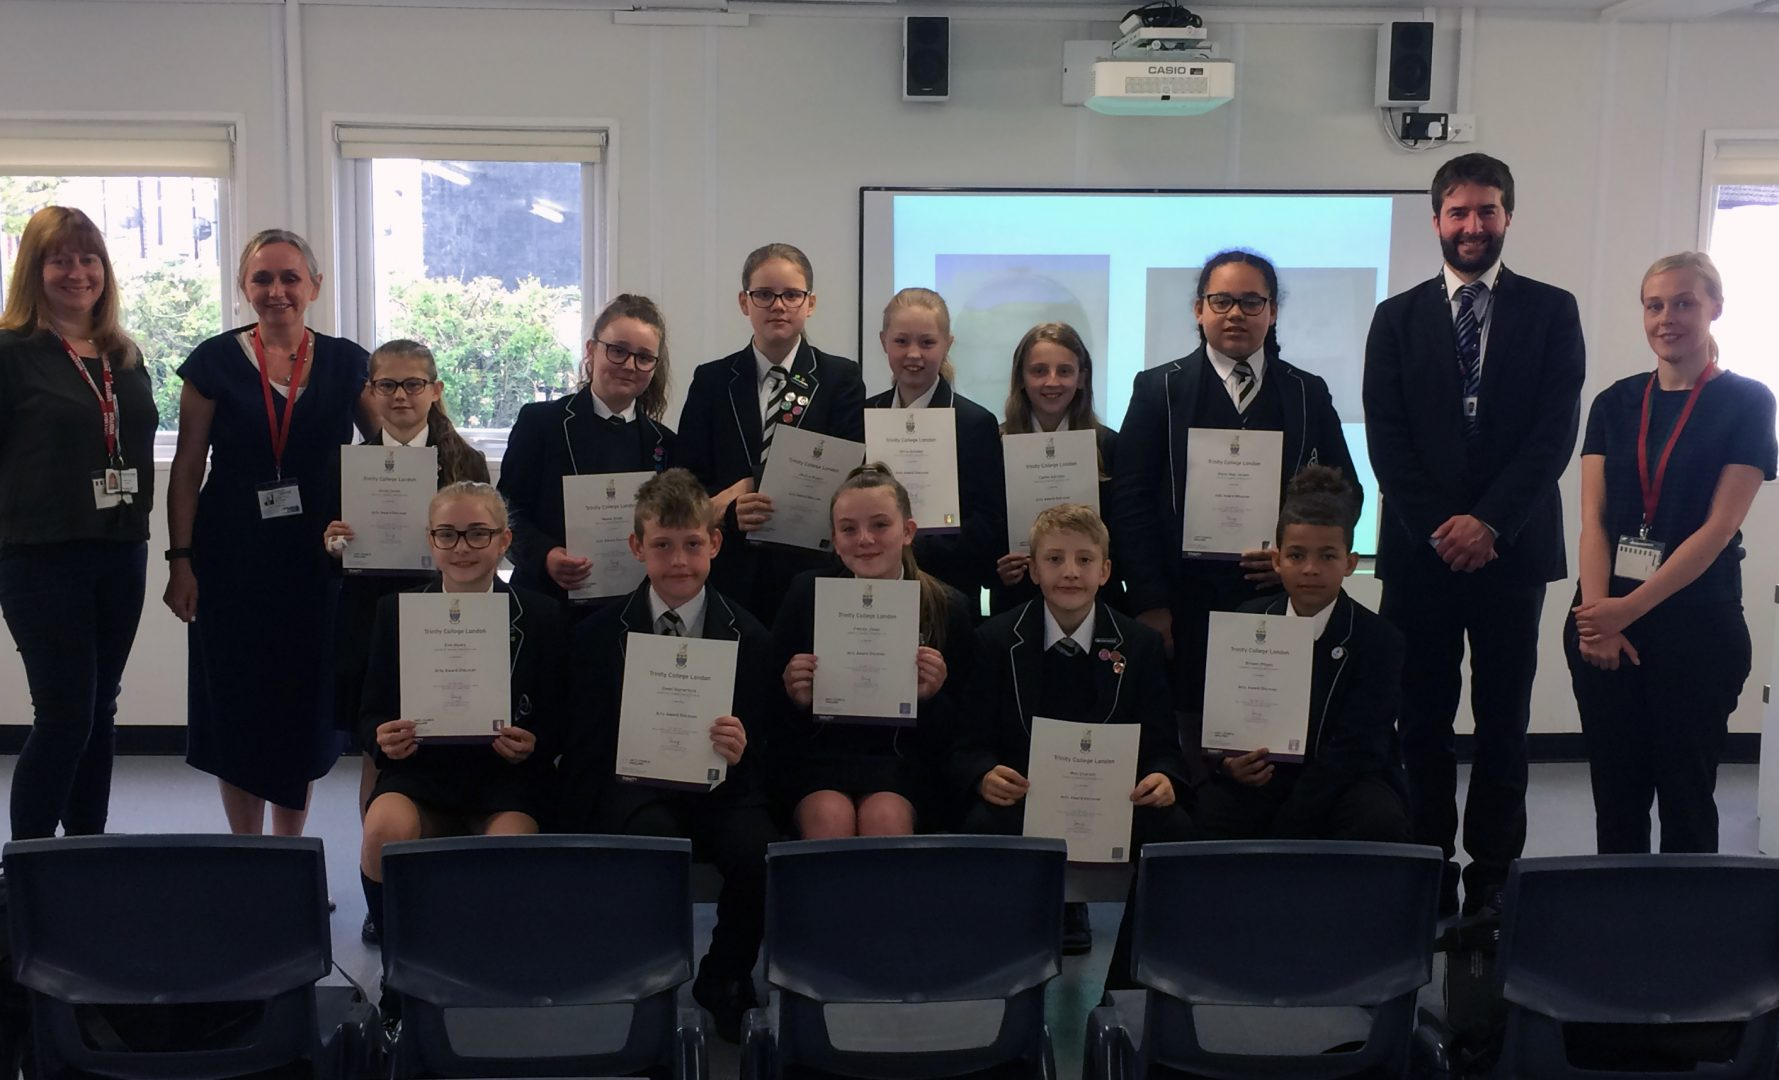 students awarded for artwork inspired by our community